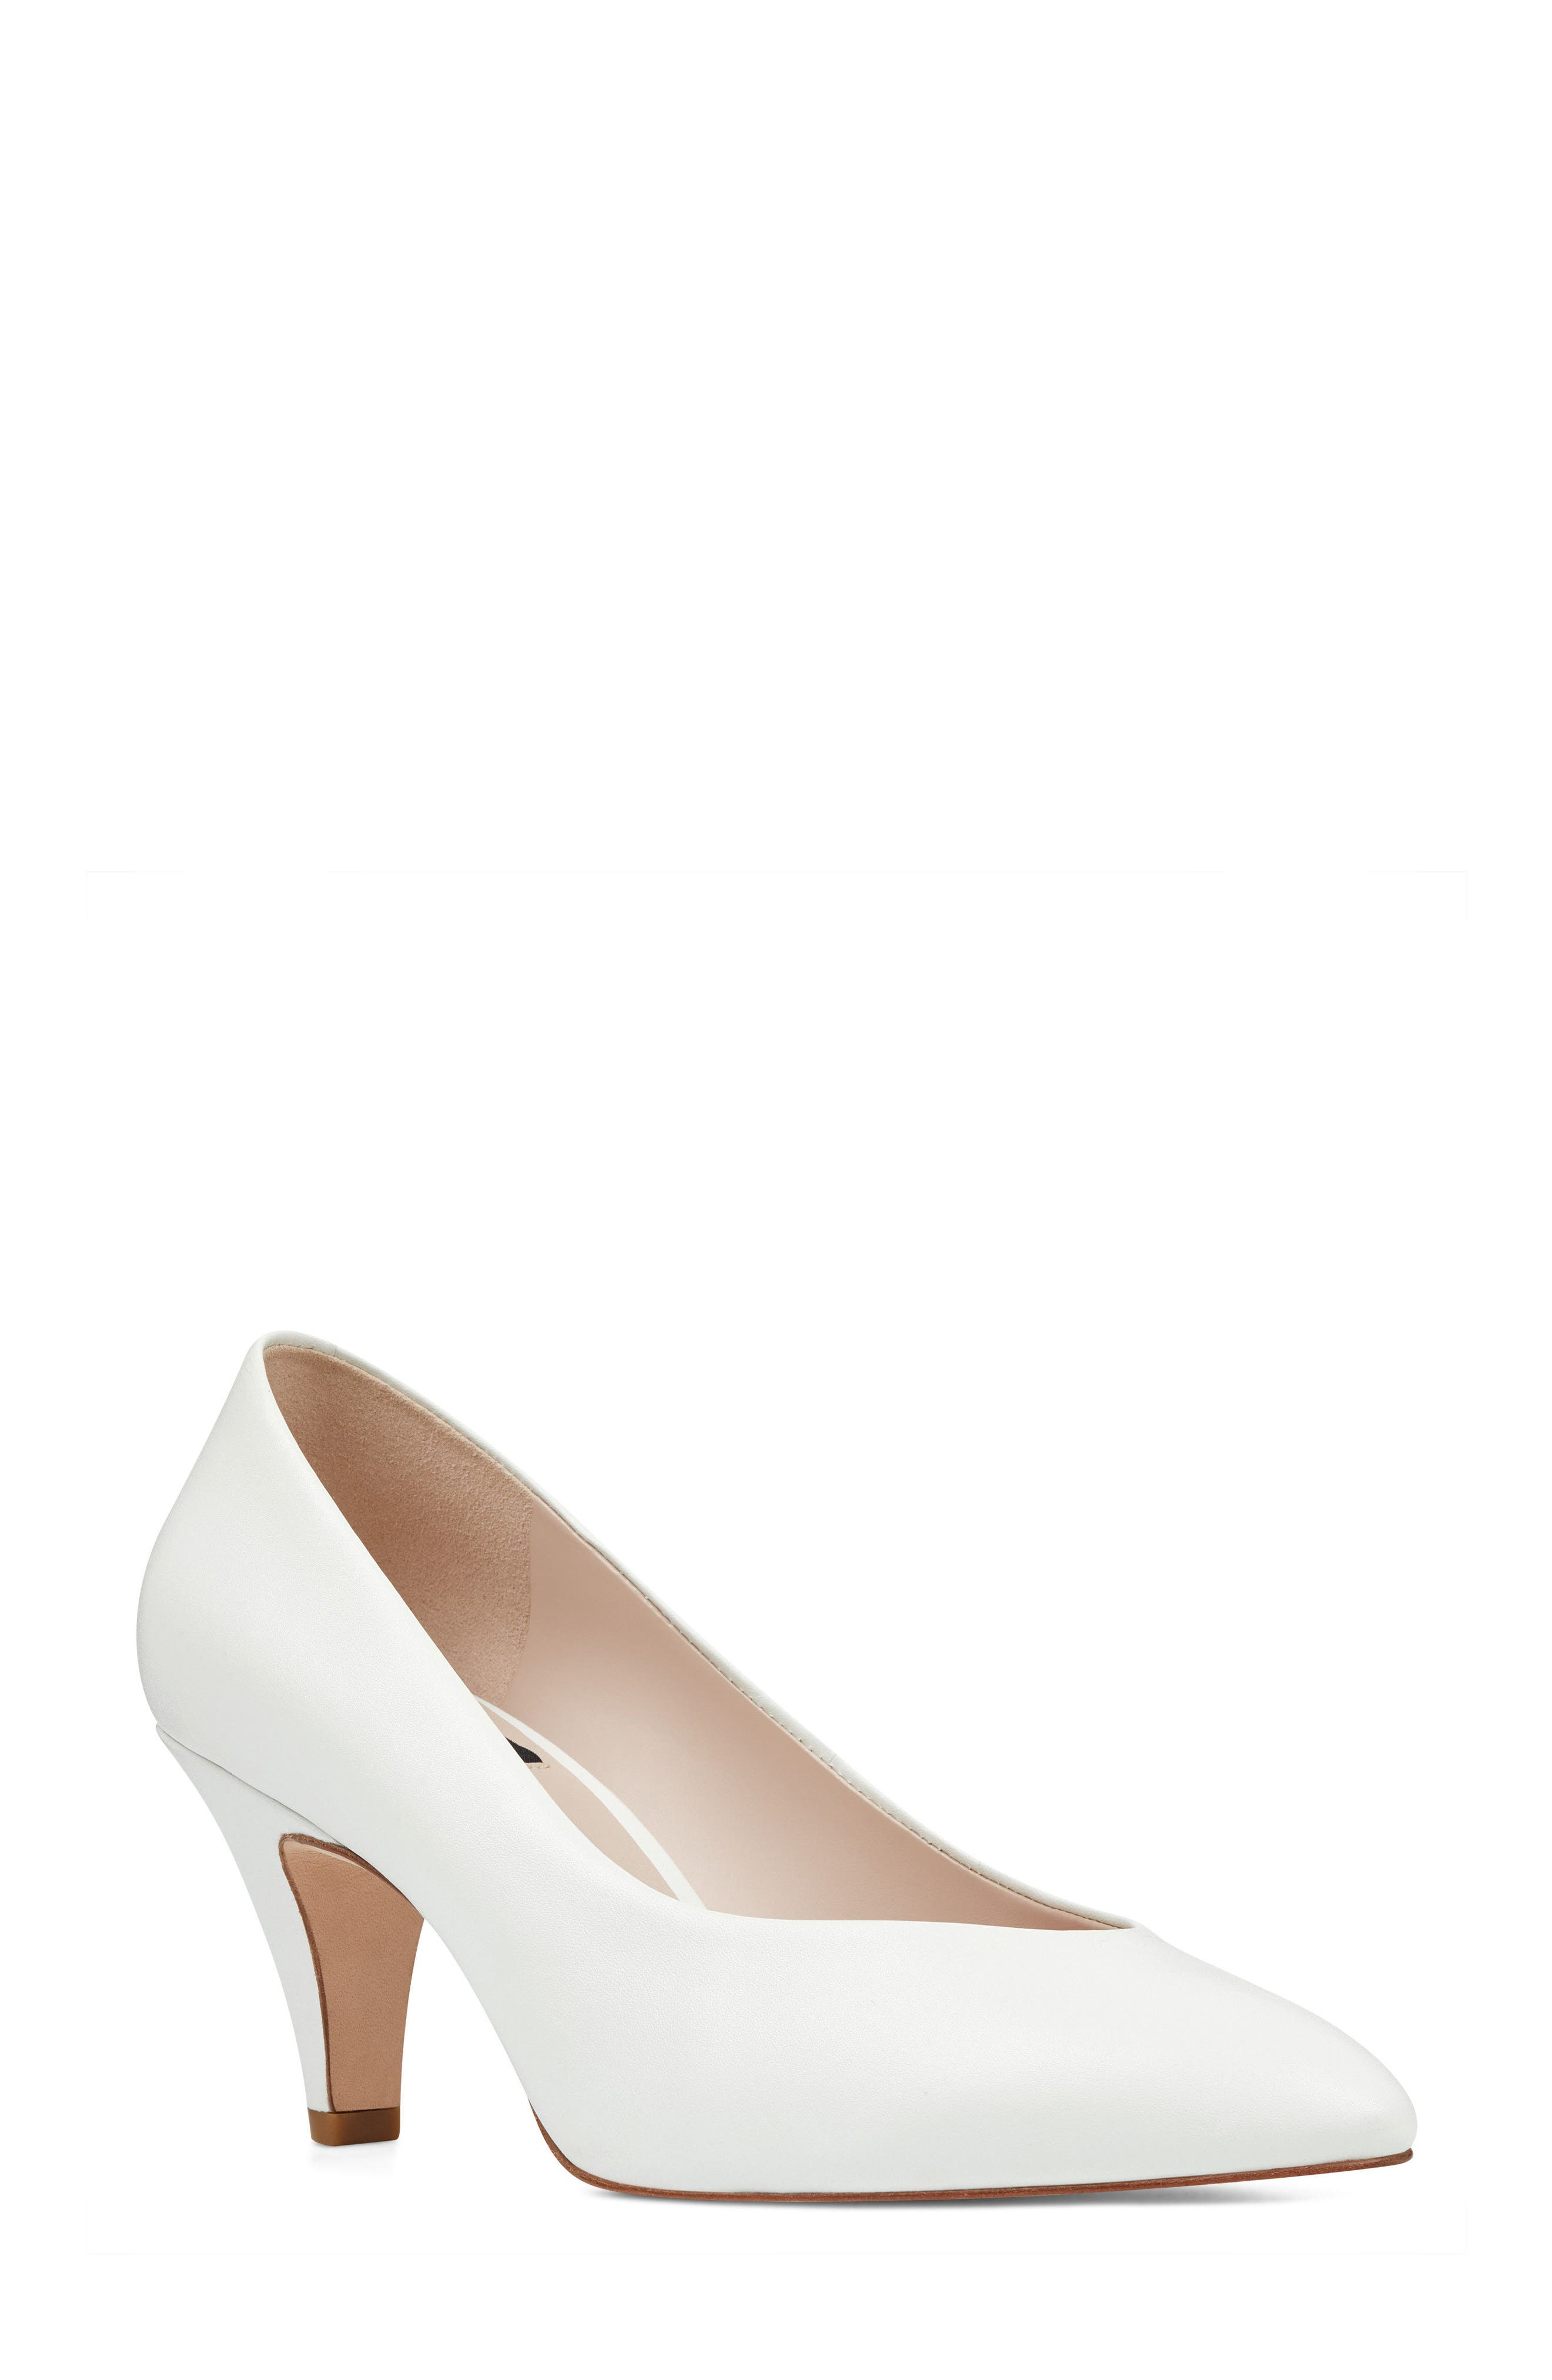 Faith - 40th Anniversary Capsule Collection Pump,                         Main,                         color, White Leather